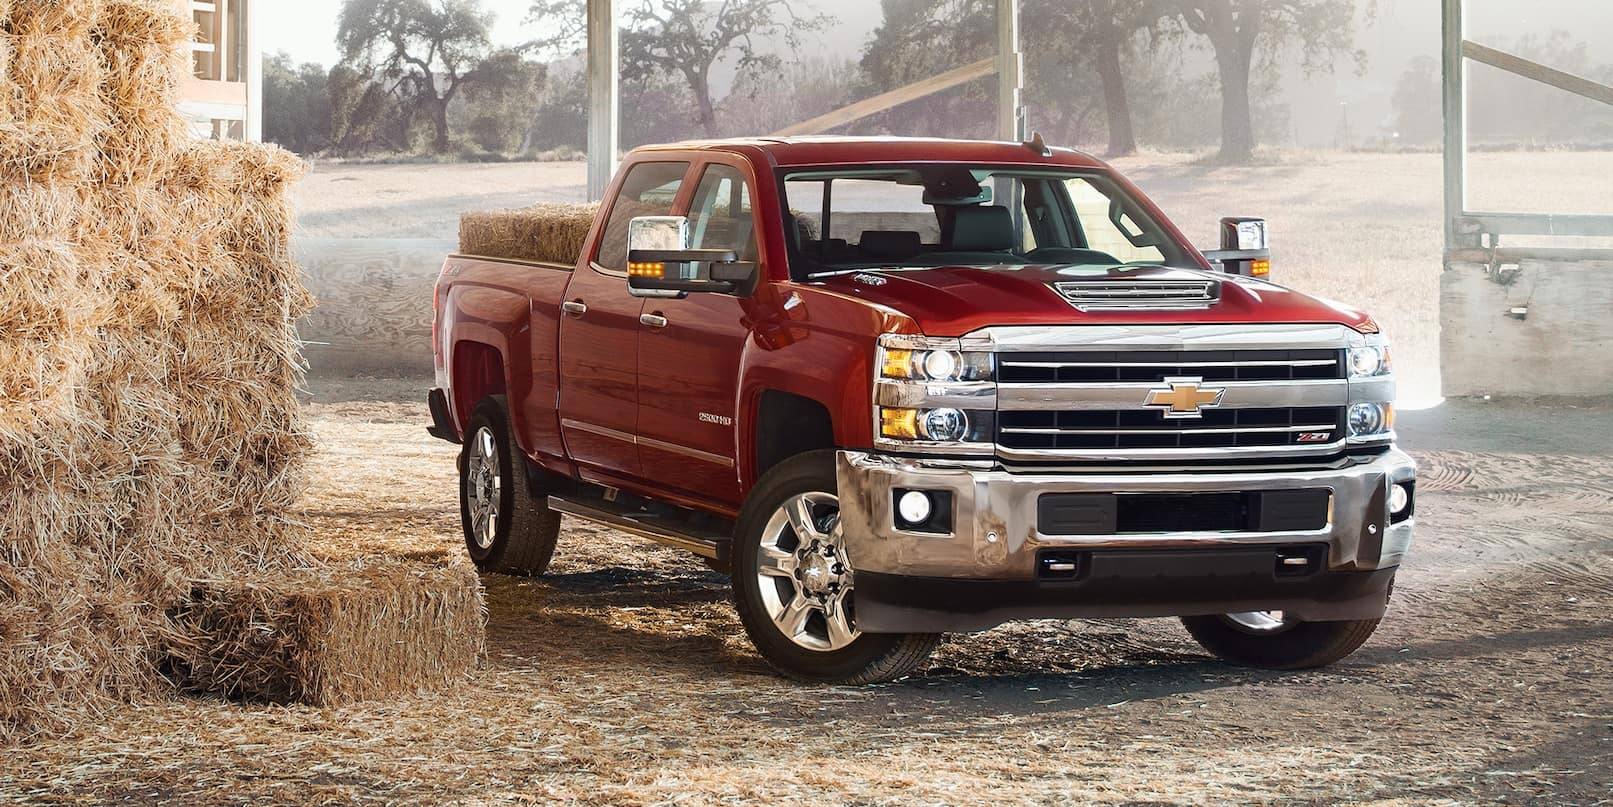 2018 Chevrolet Silverado2500hd Trucks for Sale